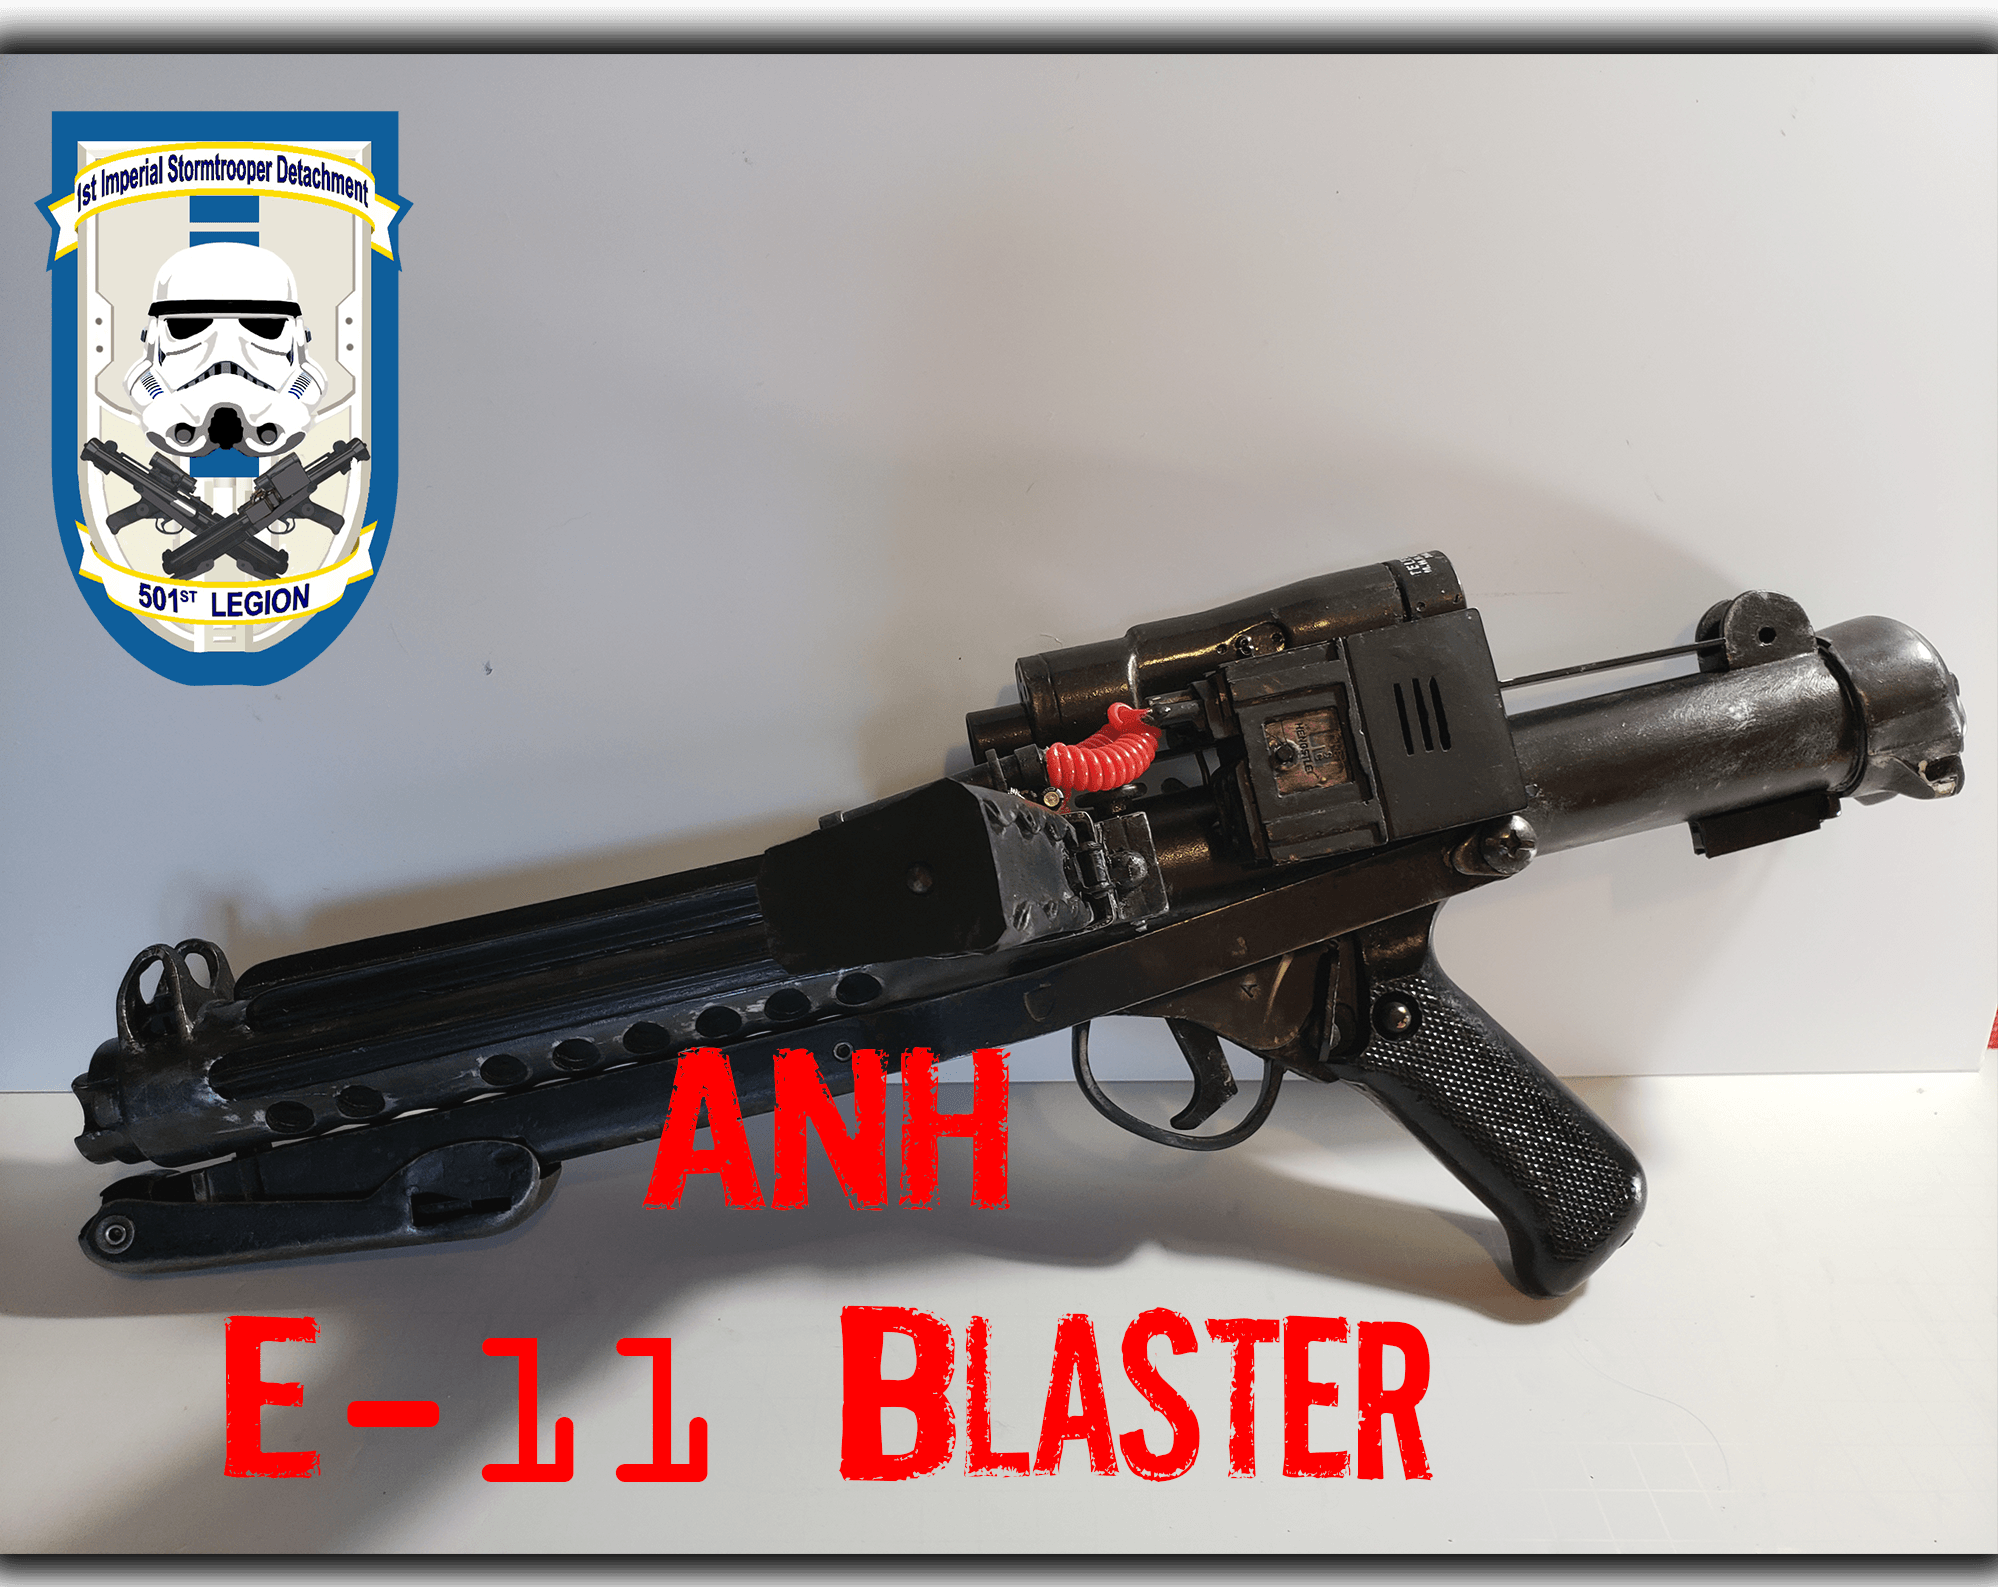 ANH E-11 Blaster - Doopy Doos Resin KitVintage Sterling folding stock & end sightTRamp BlastFX and Scope electronics